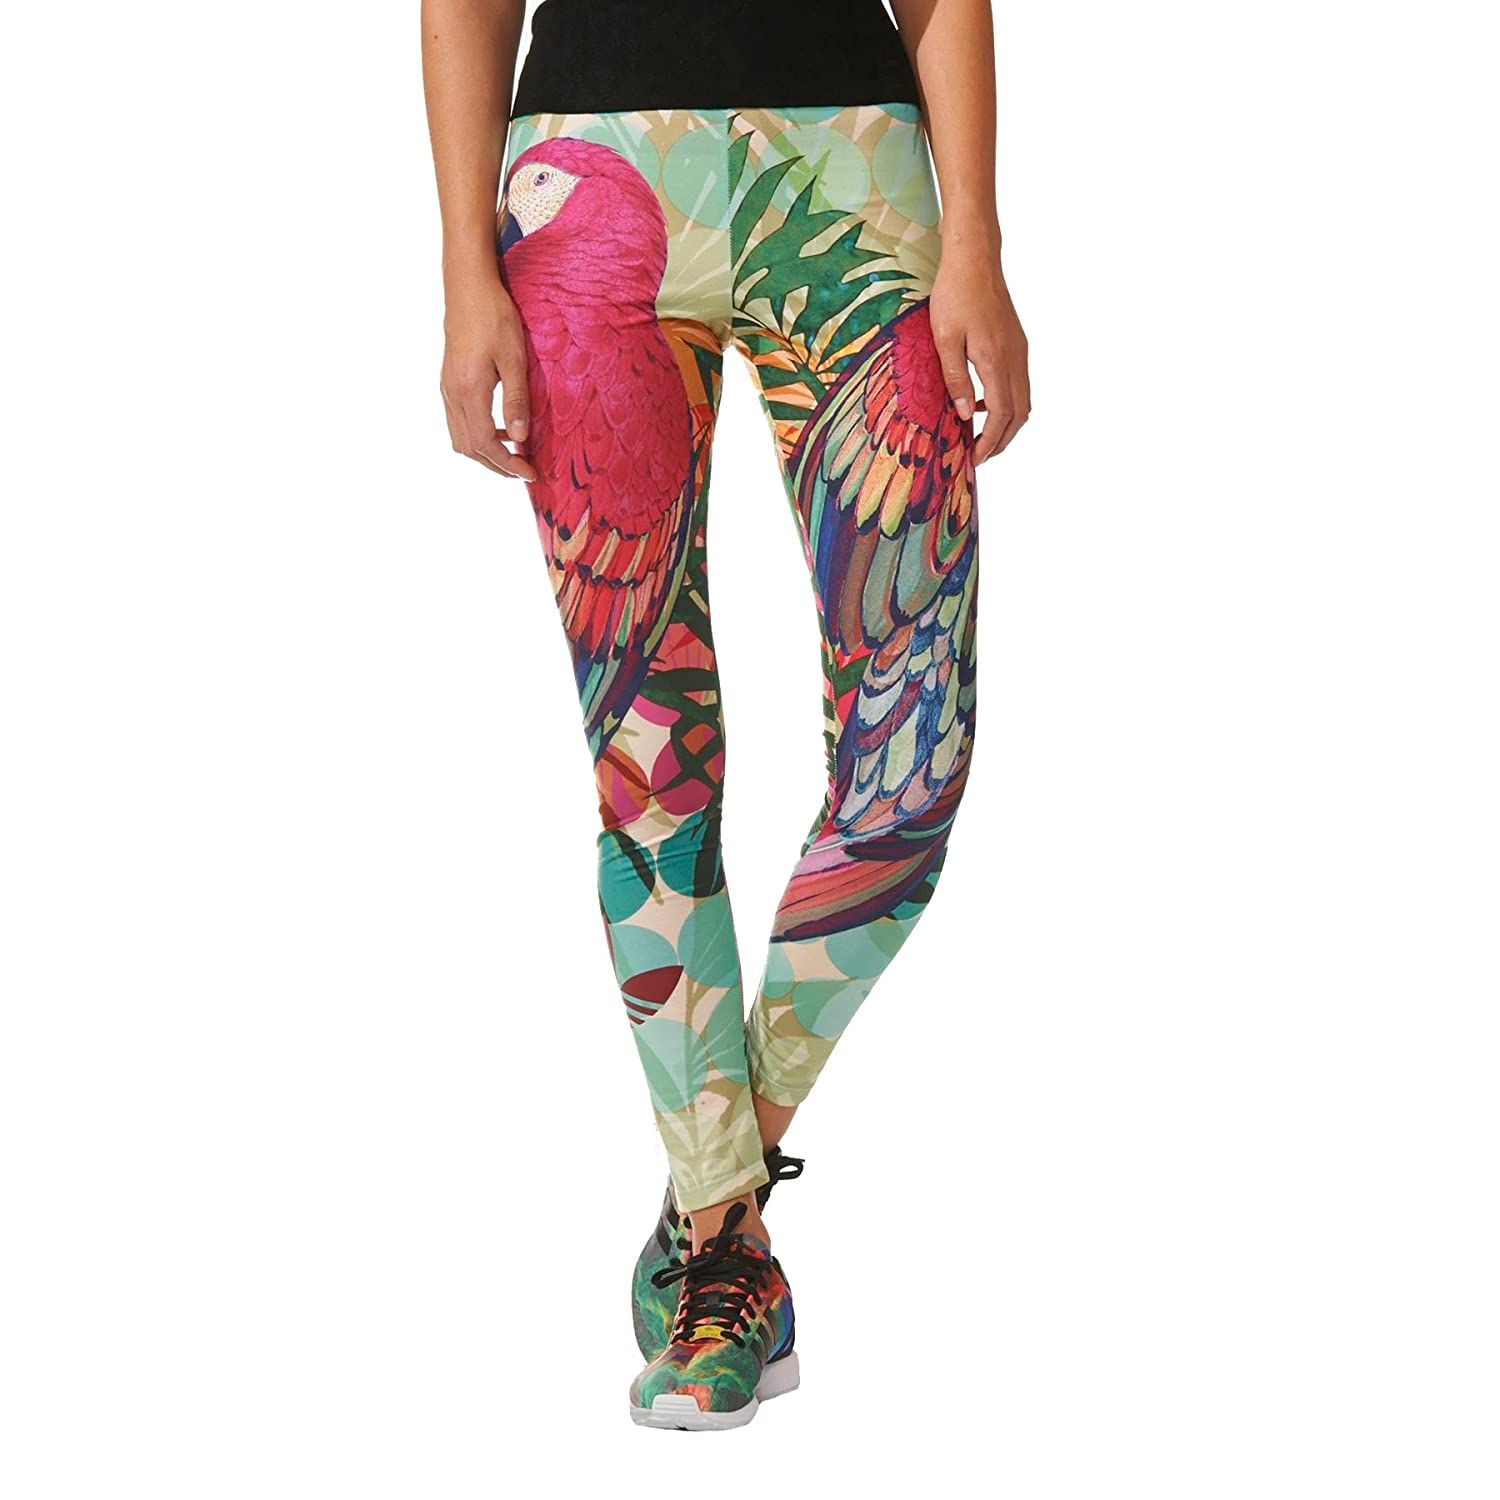 adidas leggings. adidas originals women\u0027s farm arari bright coloured graphic leggings - 4uk: amazon.co.uk: sports \u0026 outdoors